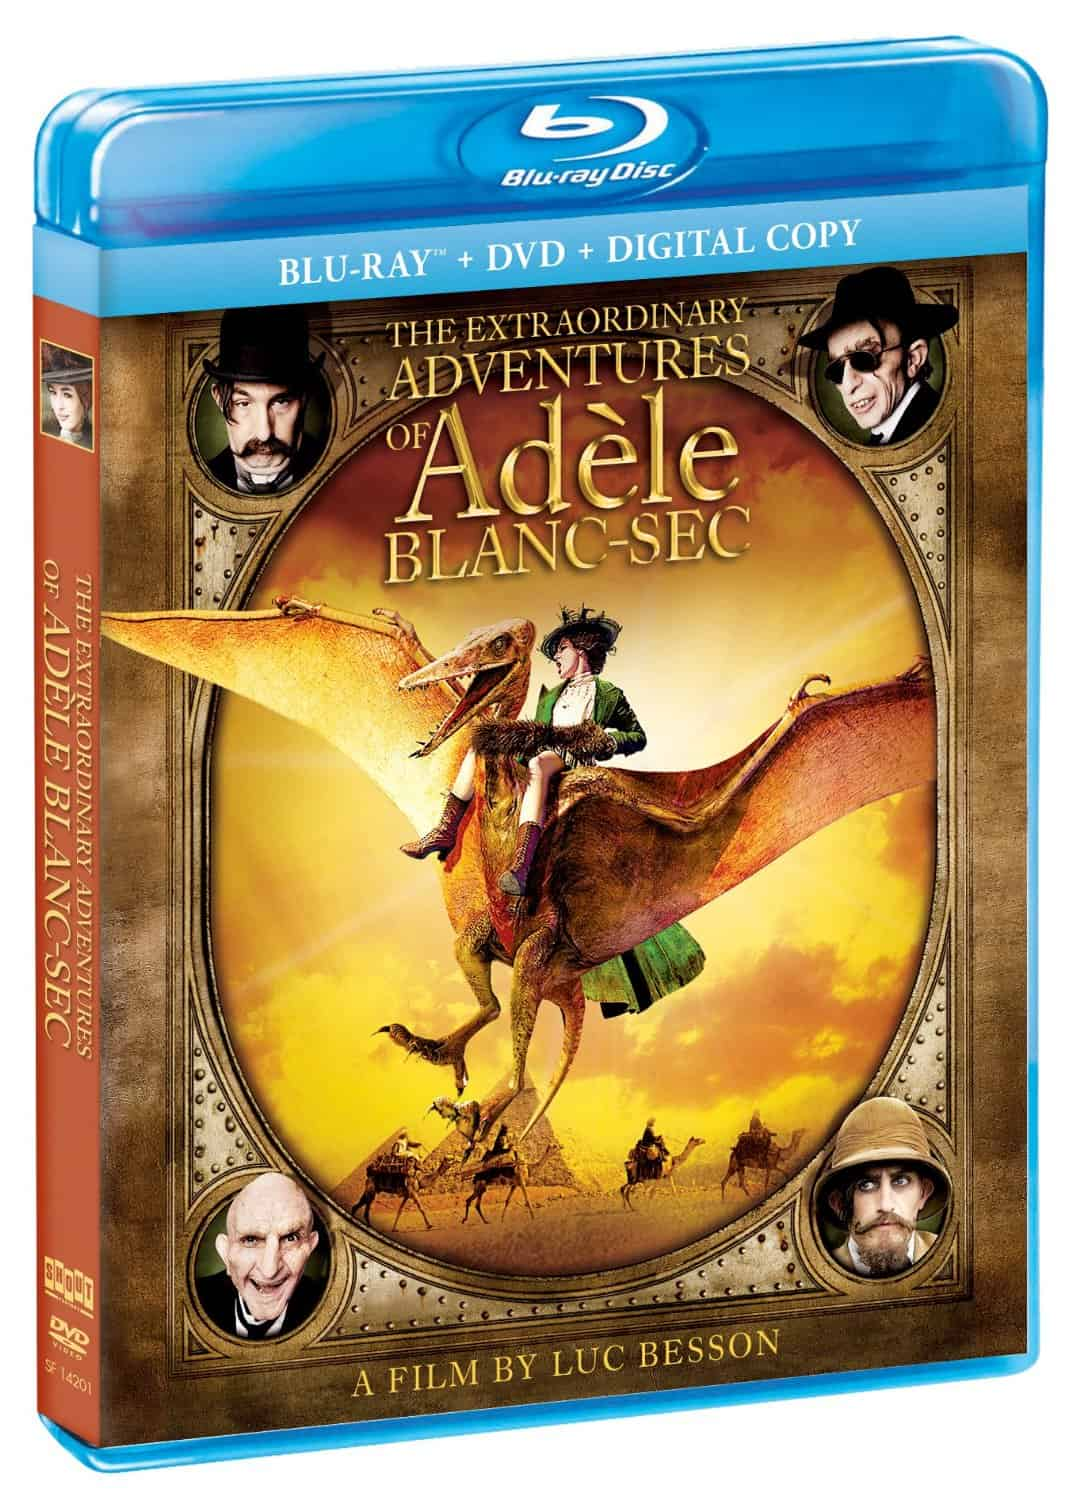 The Extraordinary Adventures of Adele Blanc-Sec Blu-Ray Combo Pack Review